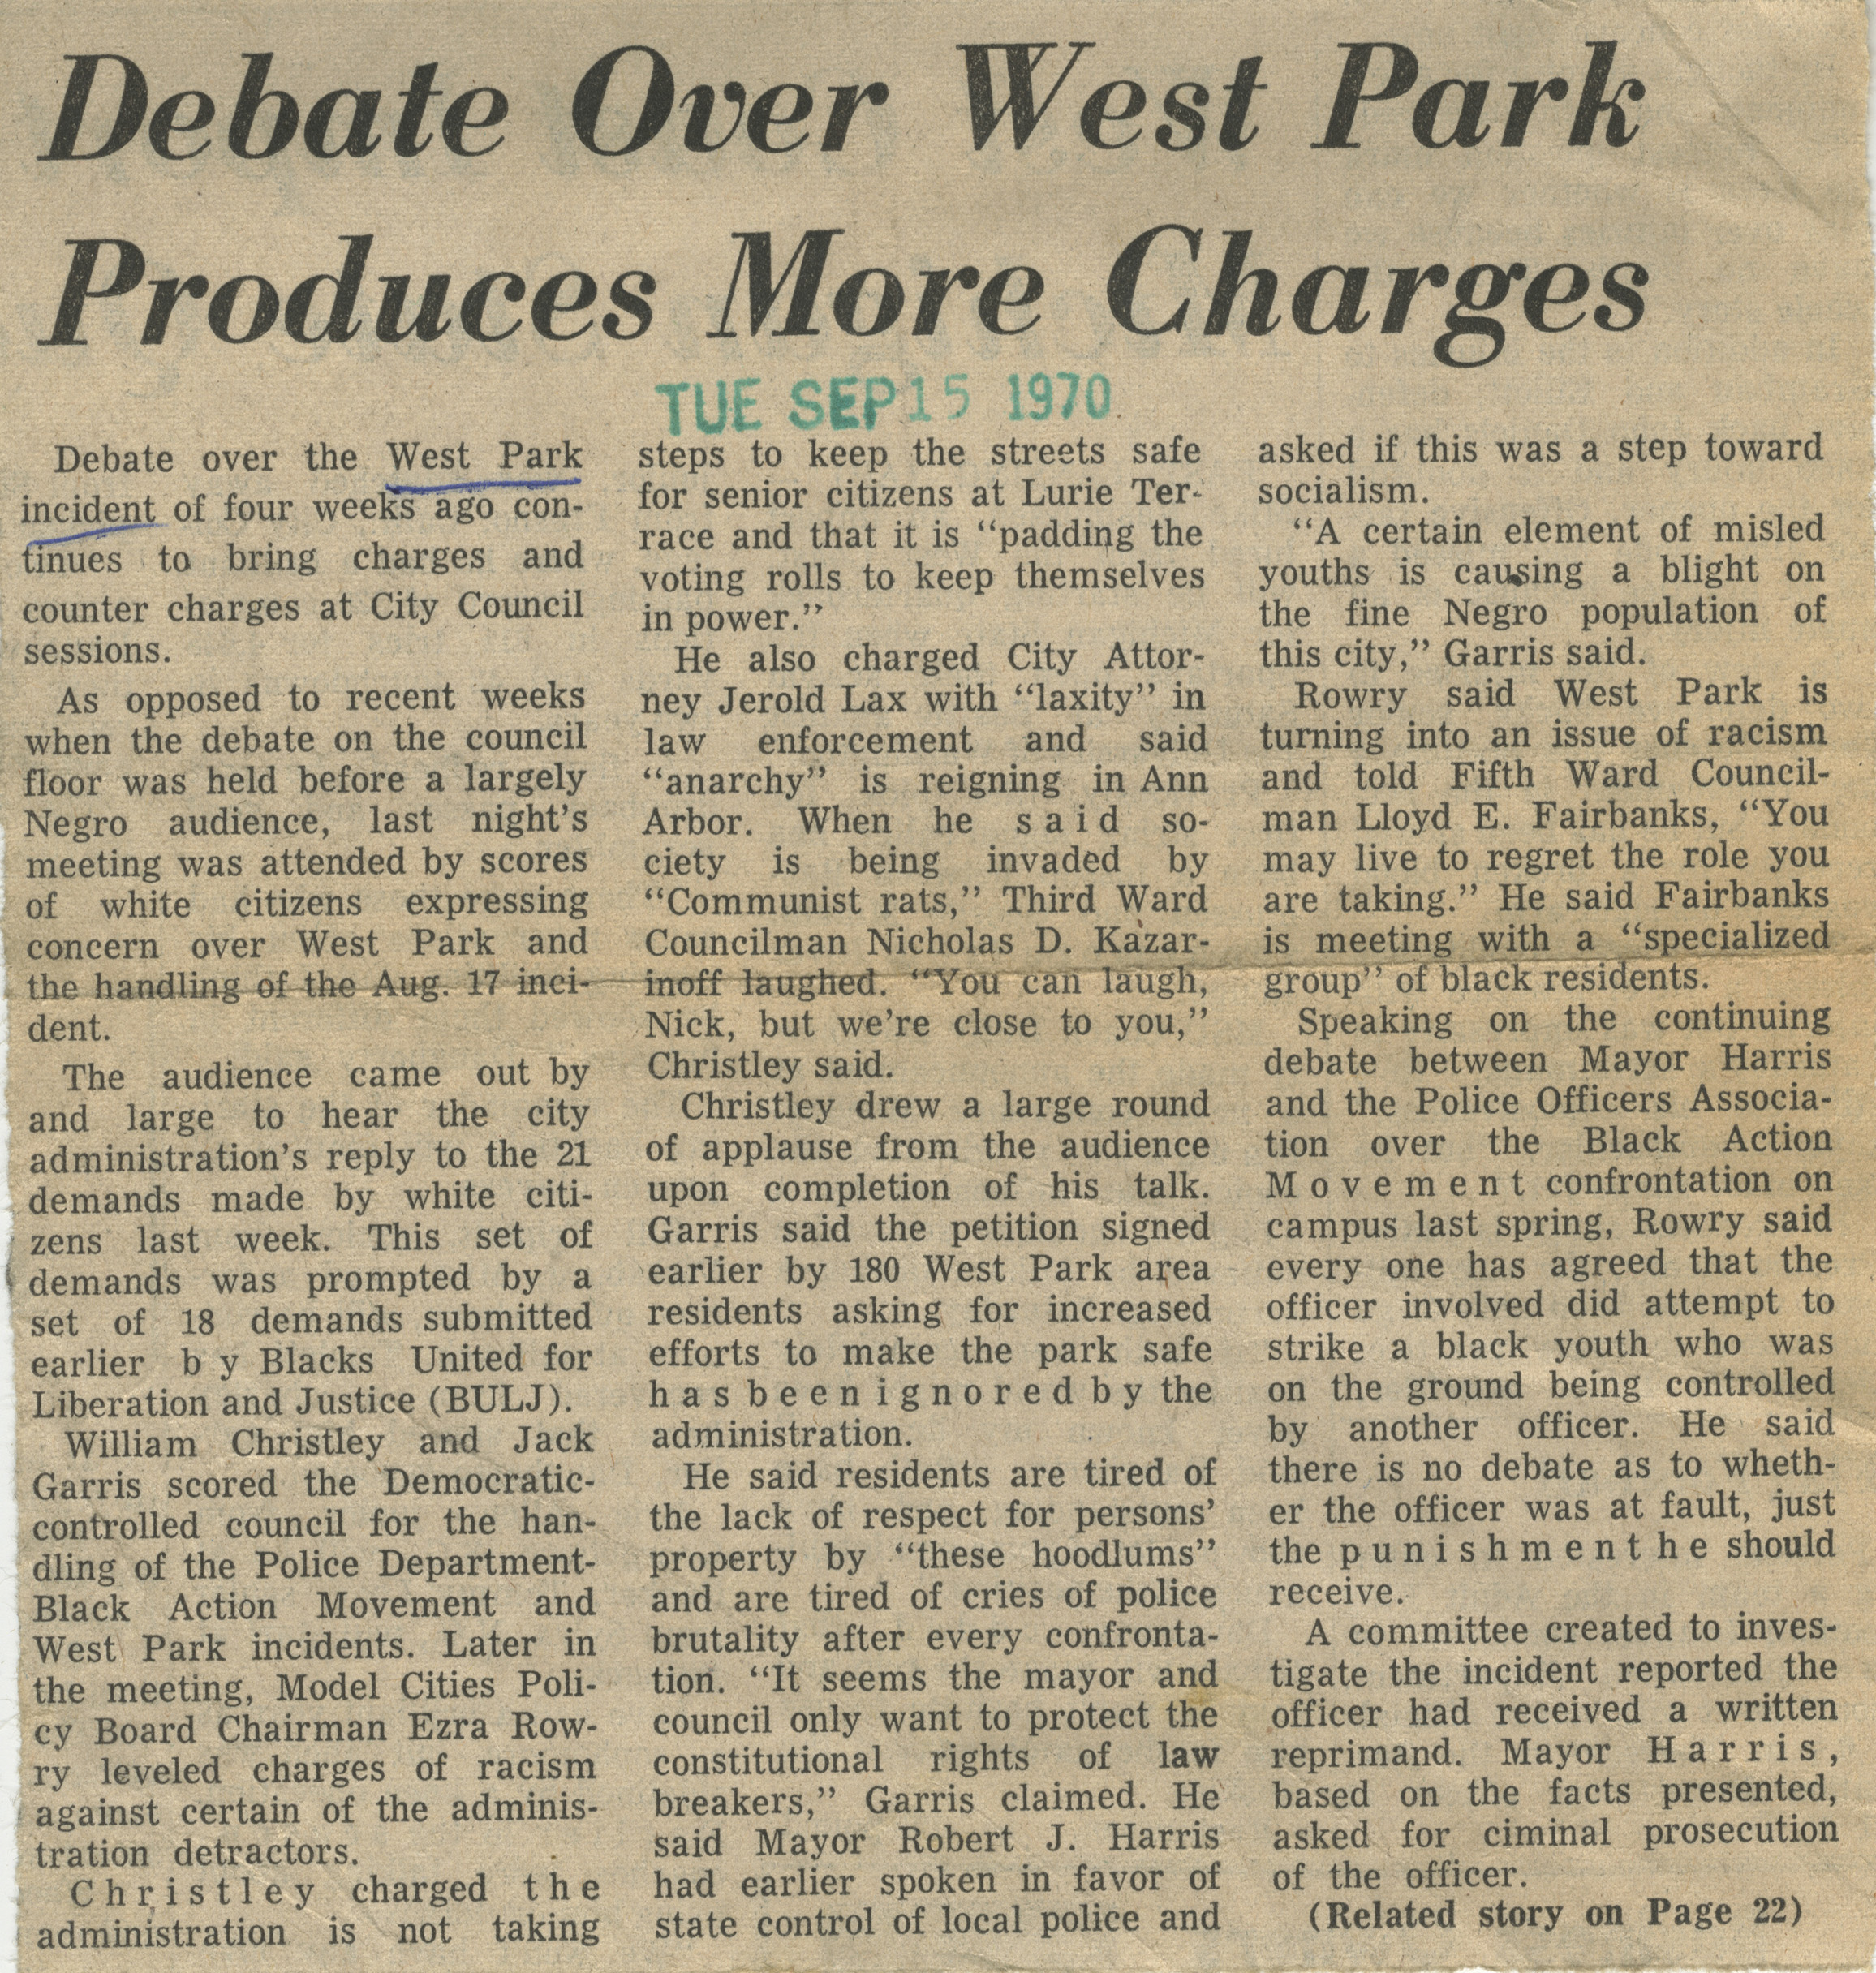 Debate Over West Park Produces More Charges image